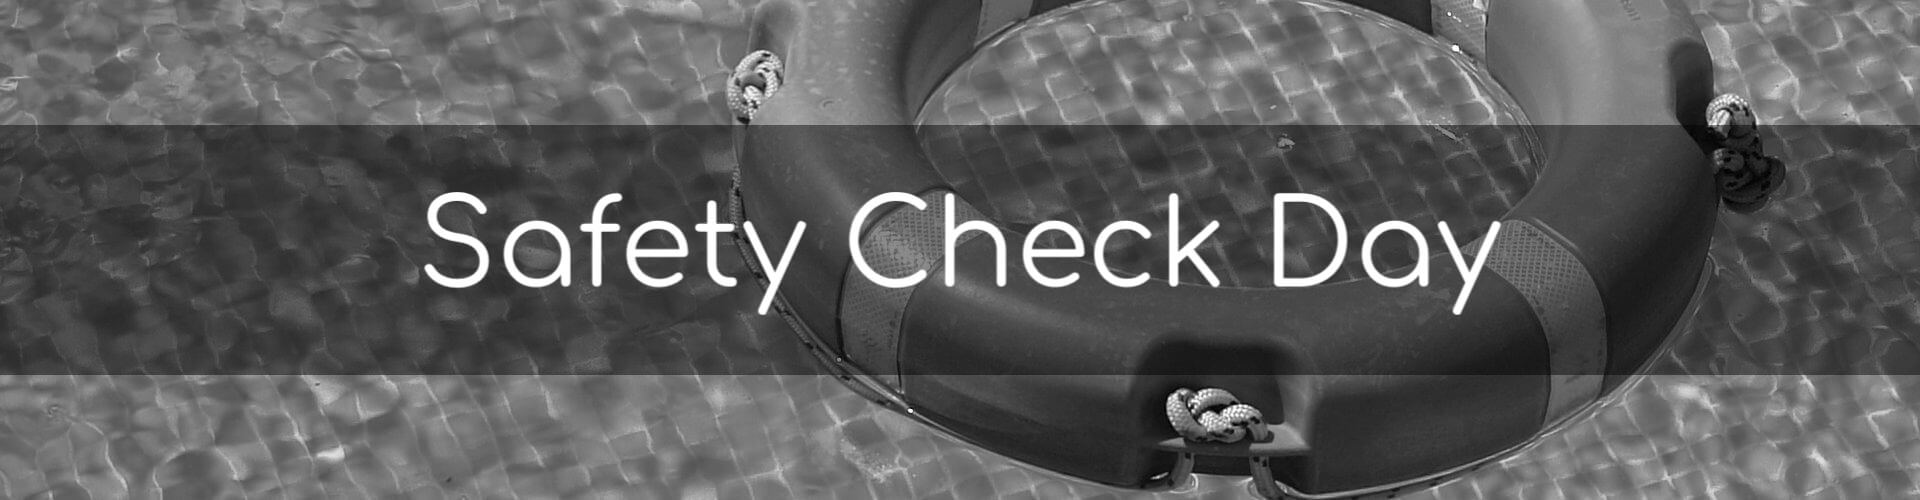 Safety Check Day - Image of a life ring floating in a pool